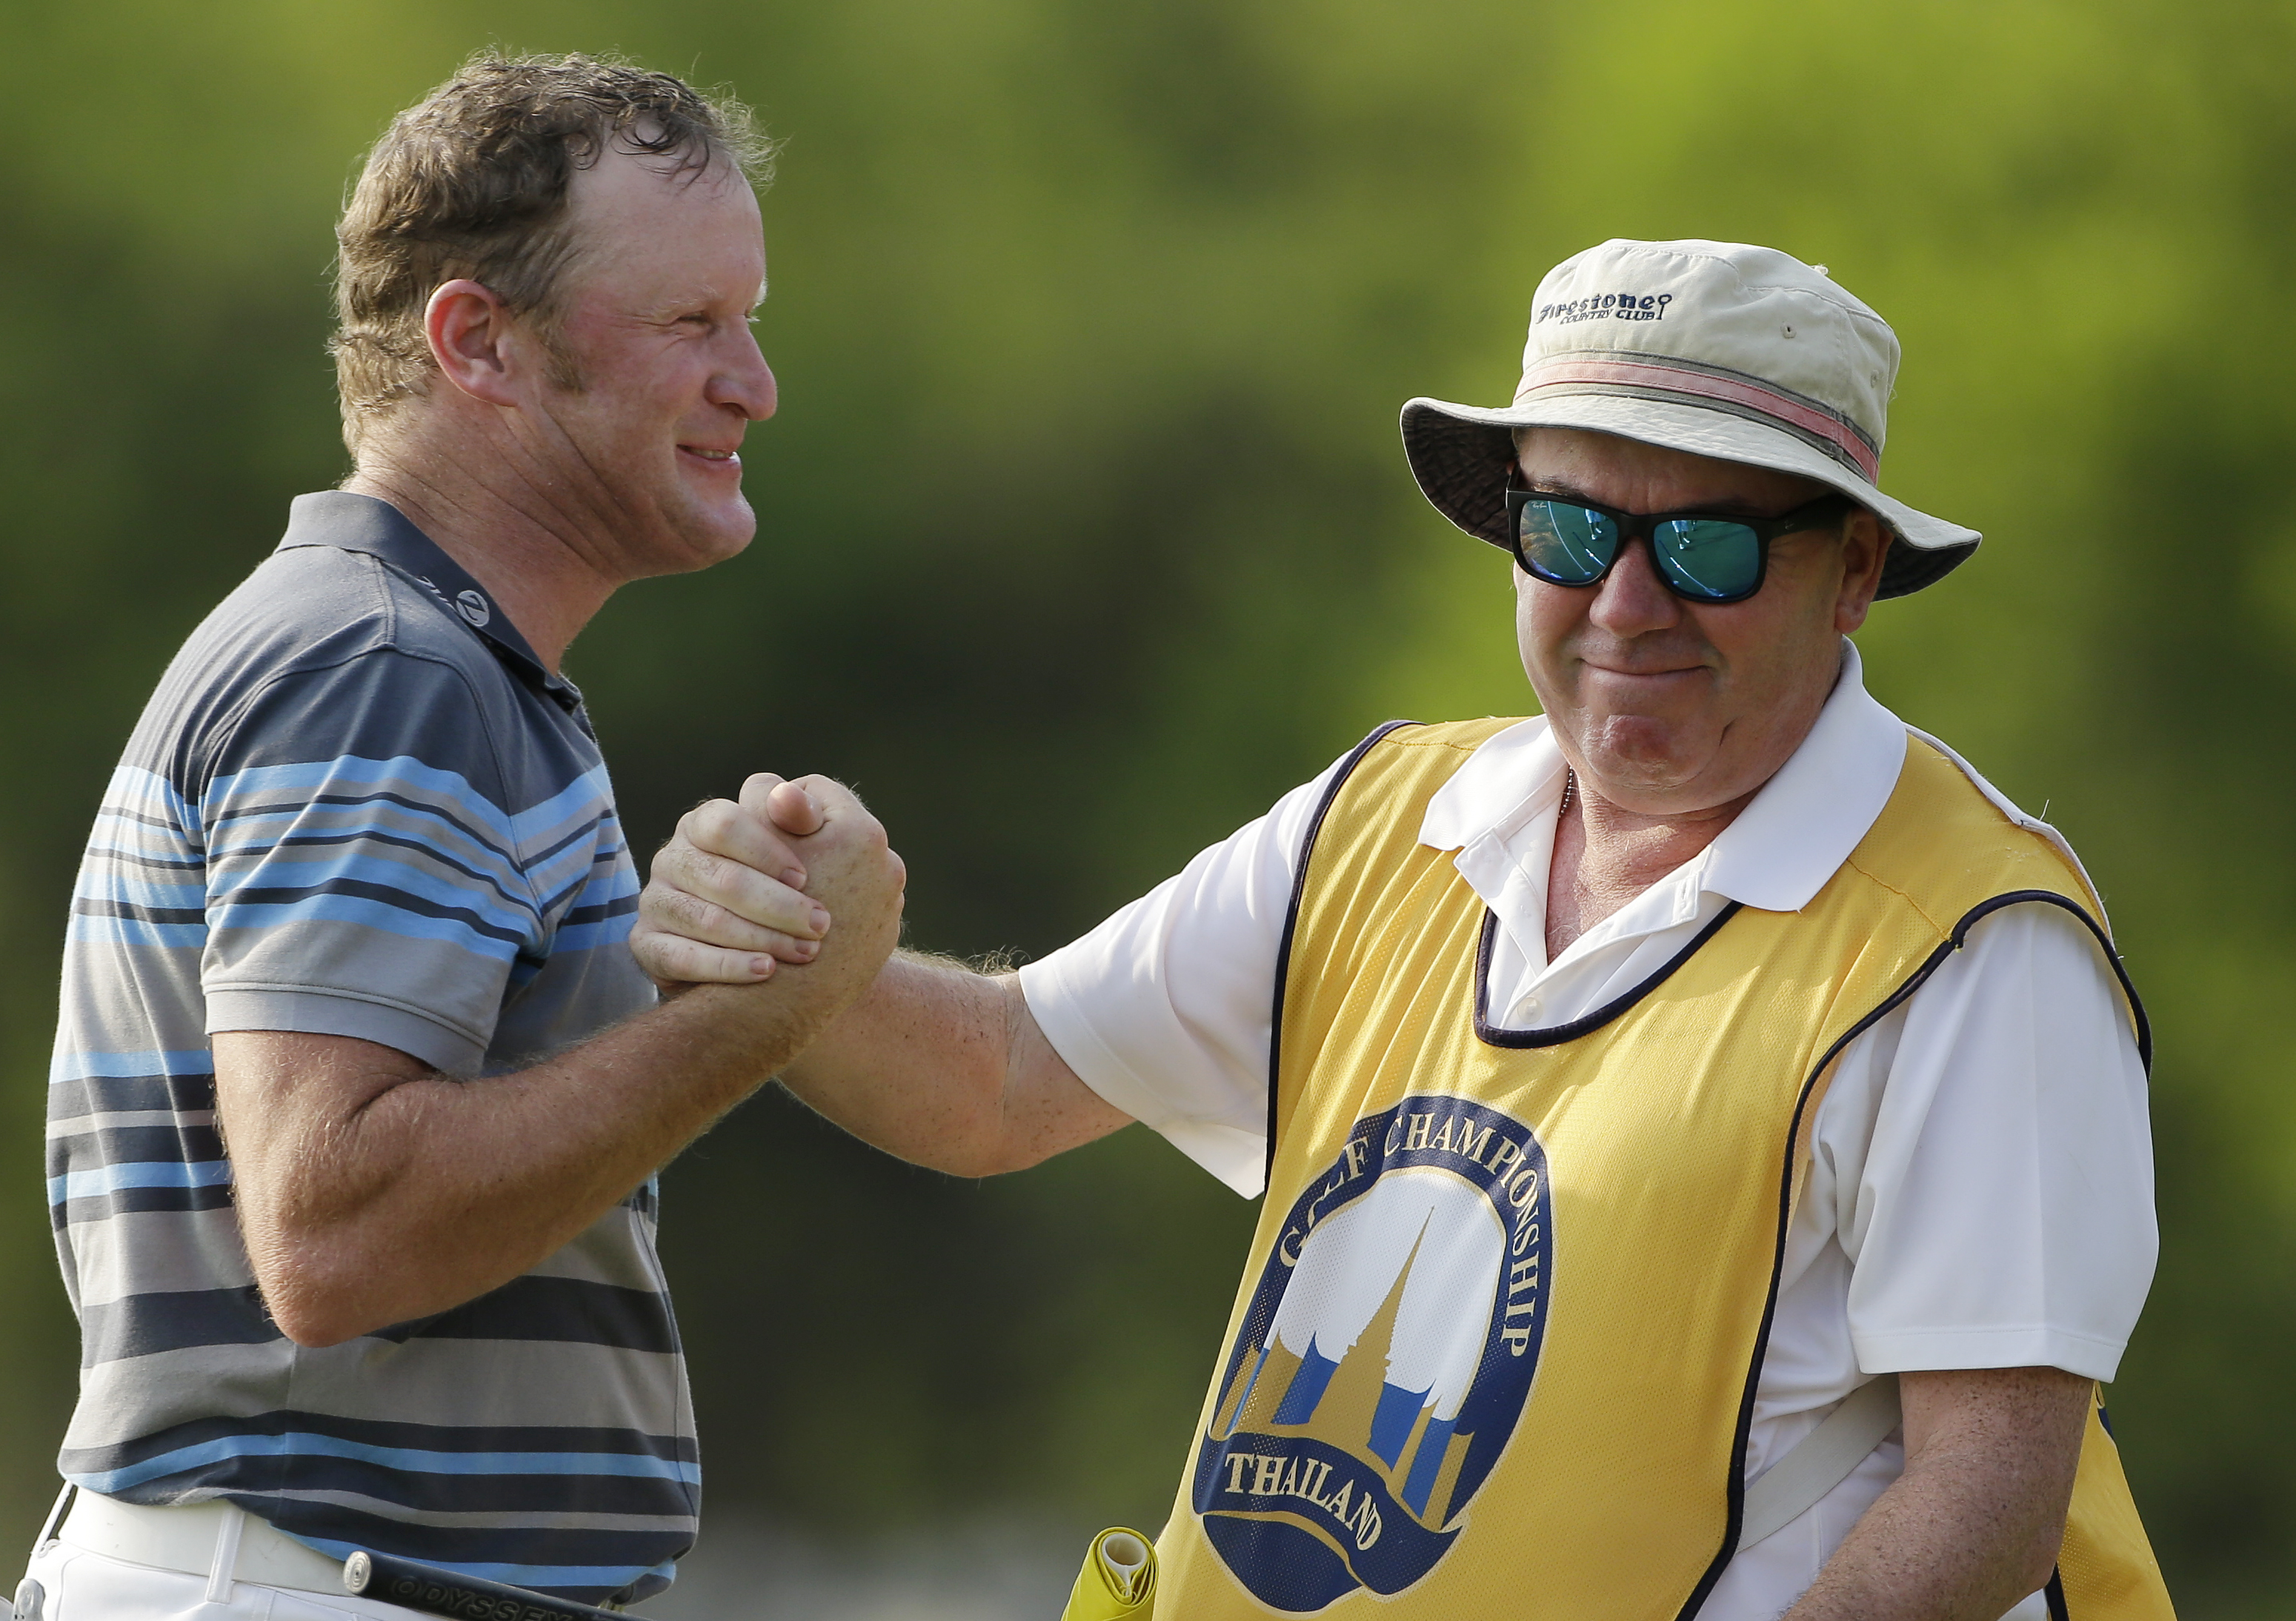 Jamie Donaldson is congratulated by his caddie Michael Donnegy, right, after winning the Thailand Golf Championship at the Amata Spring Country Club, Chonburi, Thailand, on Sunday, Dec. 13, 2015.